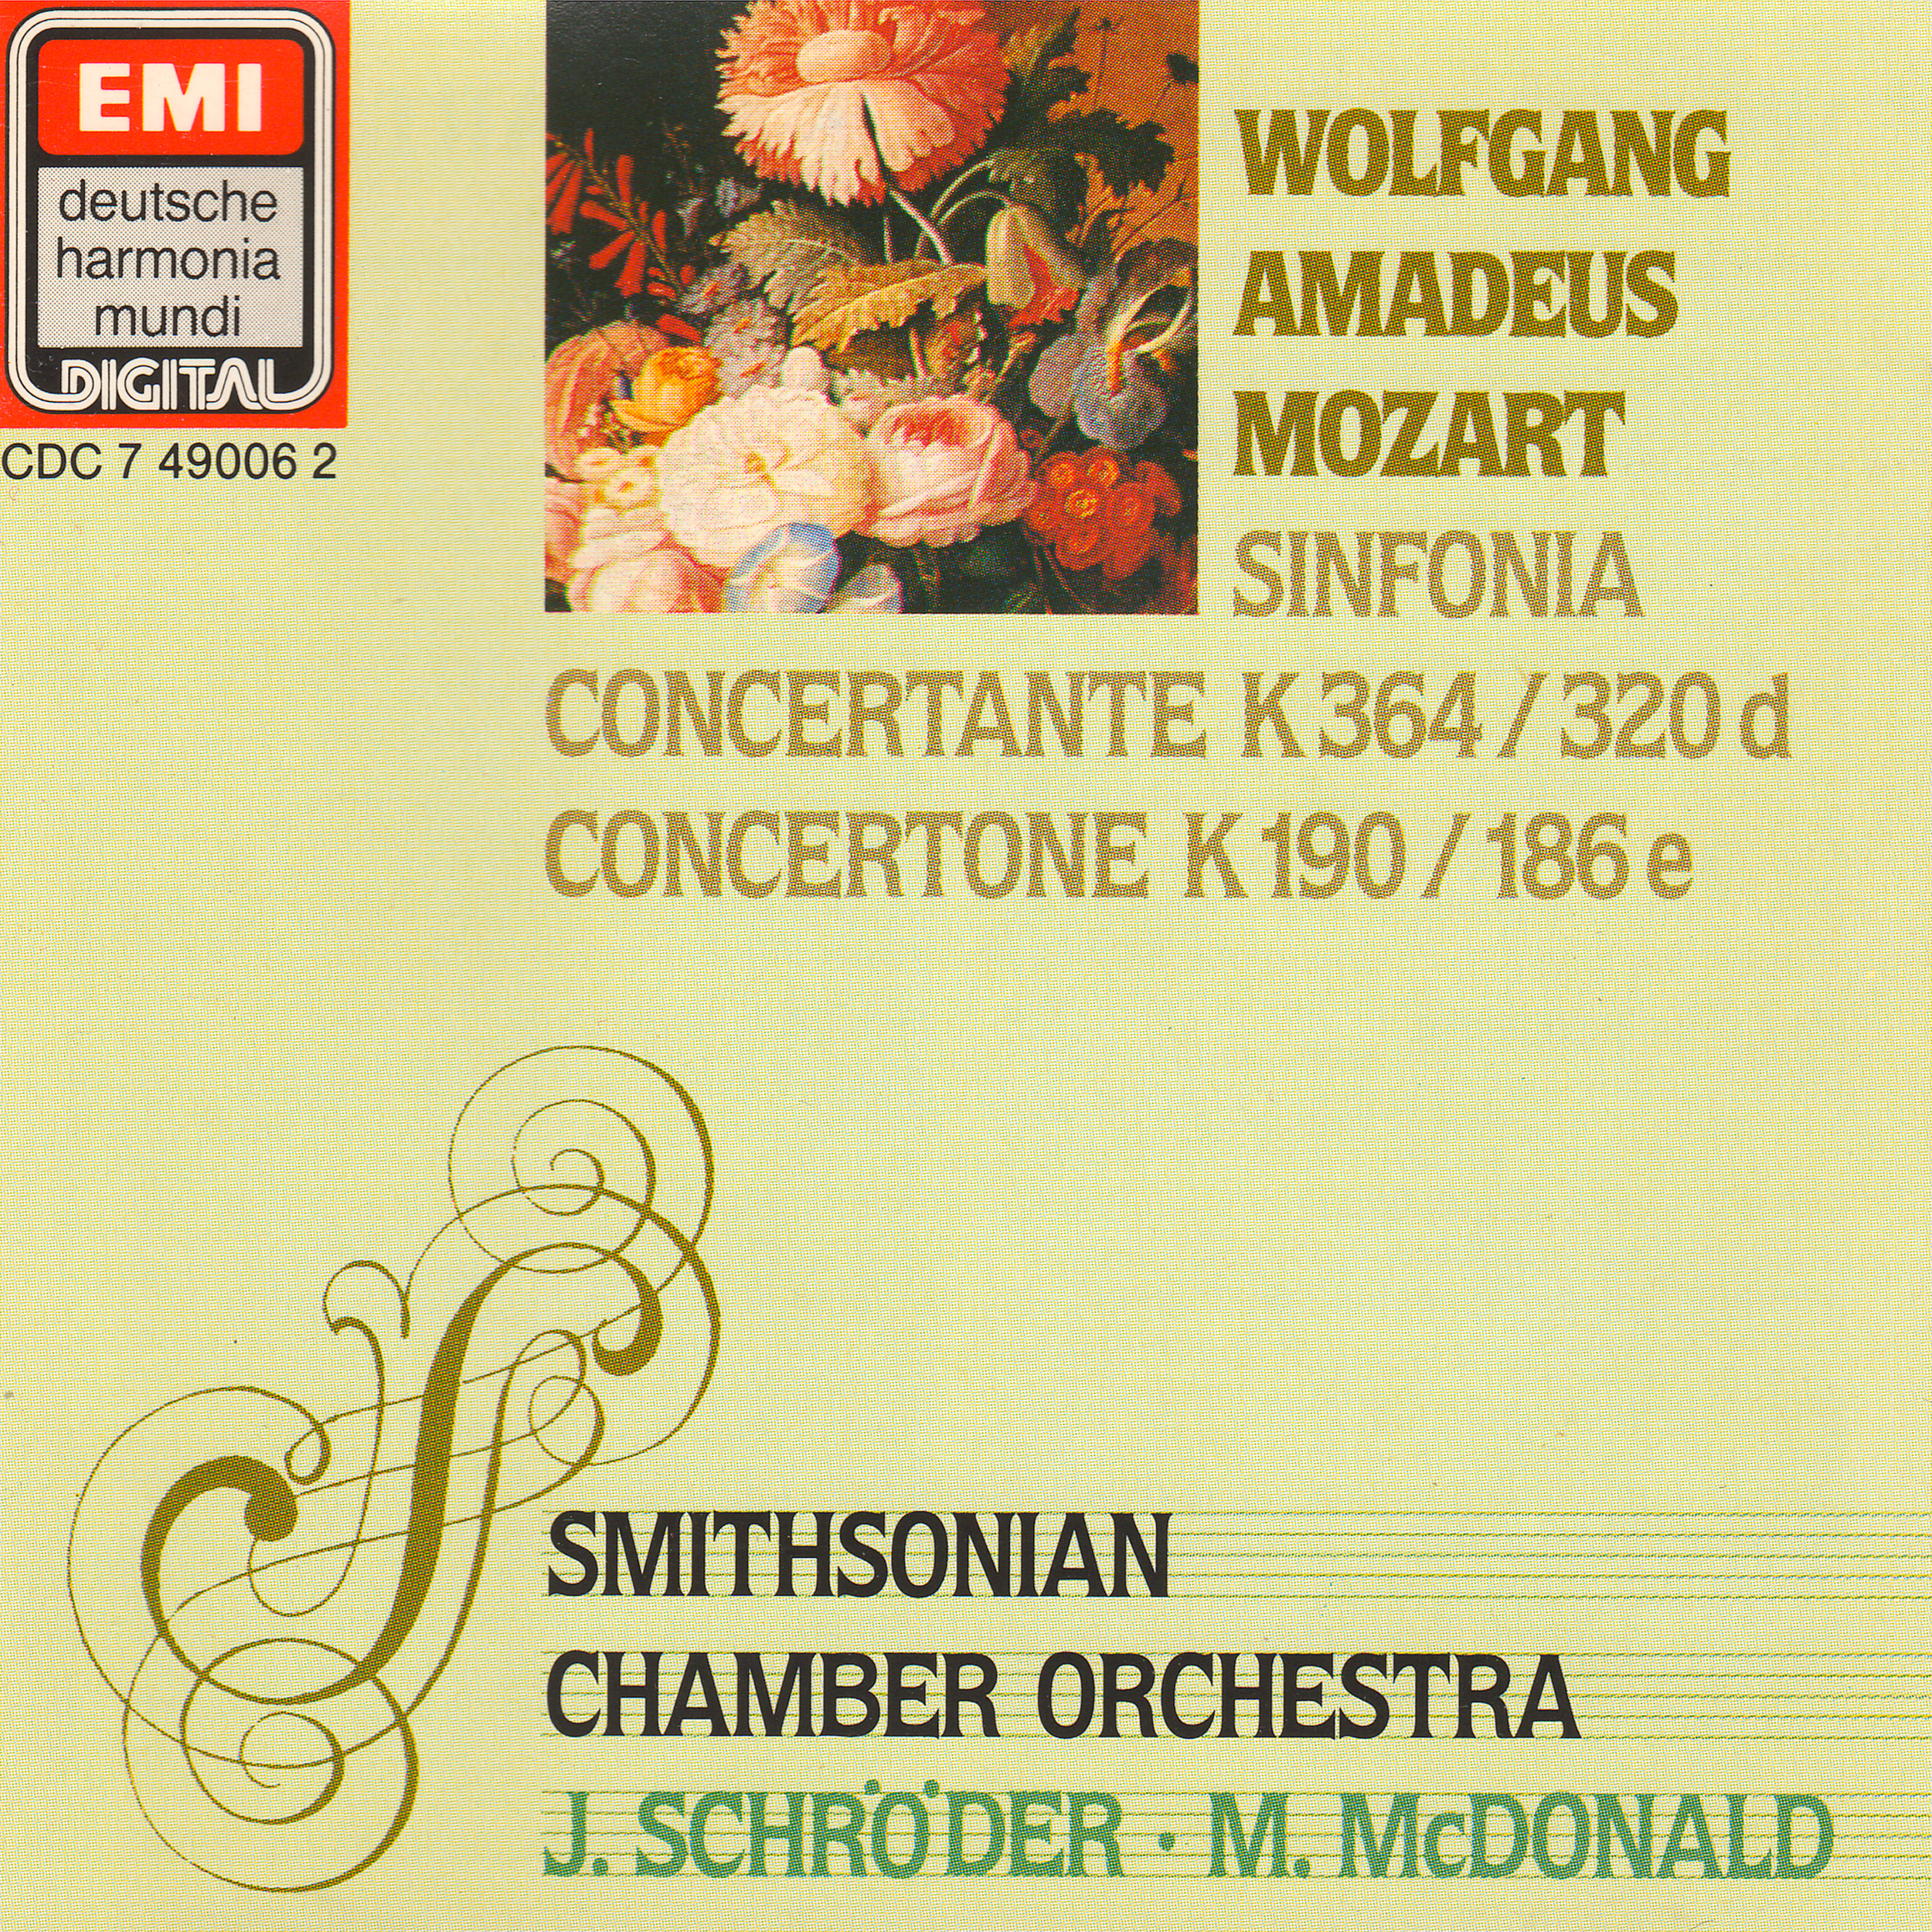 schoeder macdonald mozart duo co.jpg